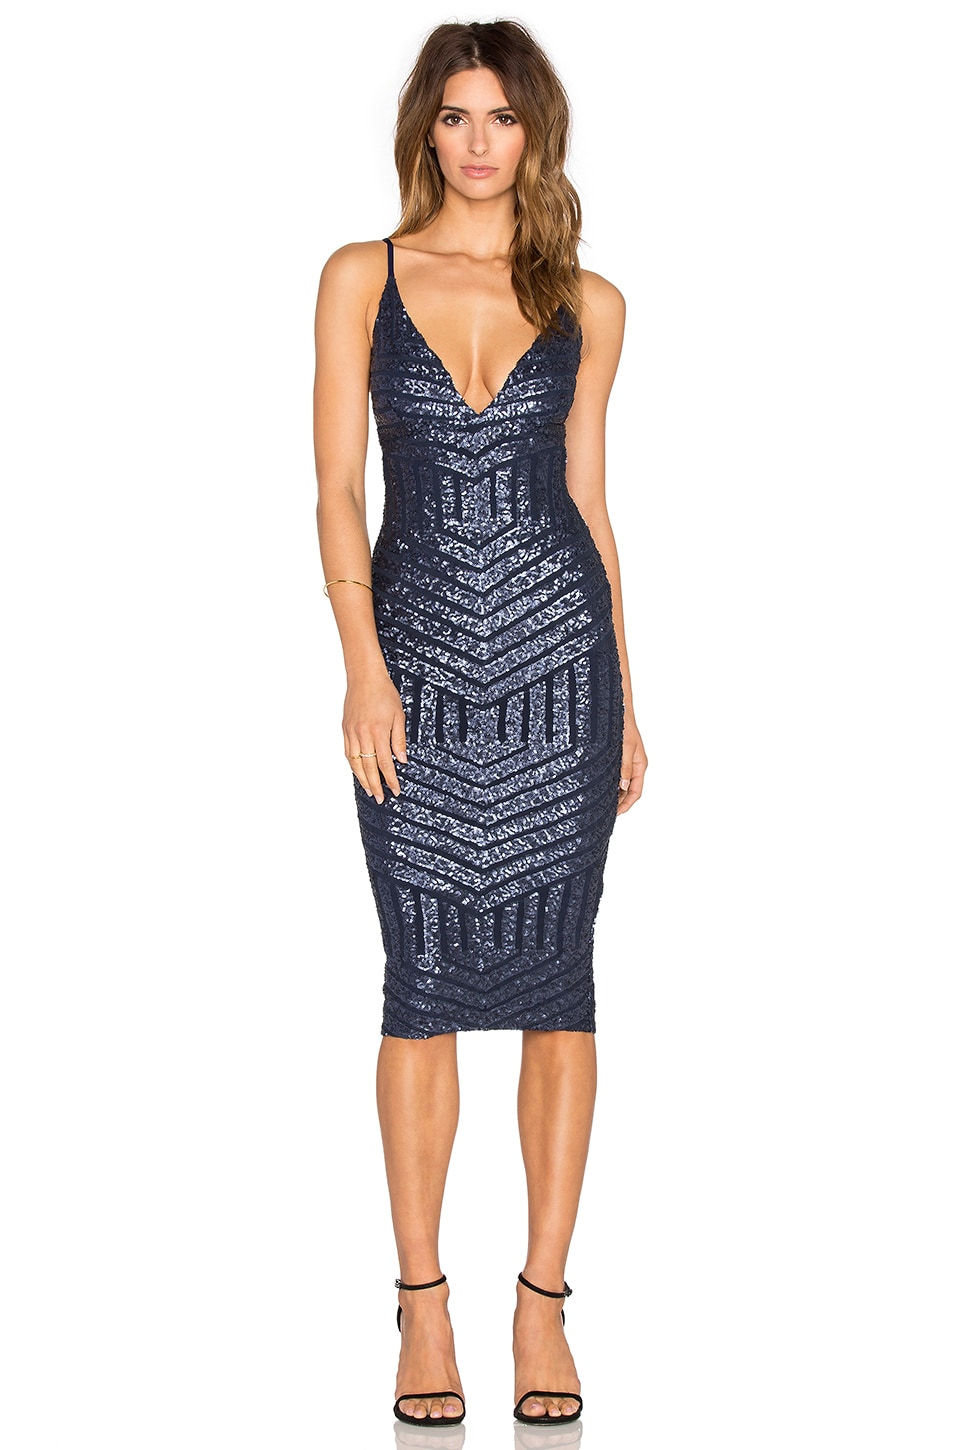 Nookie Starstruck Sequin Slip Dress in Navy Sequin